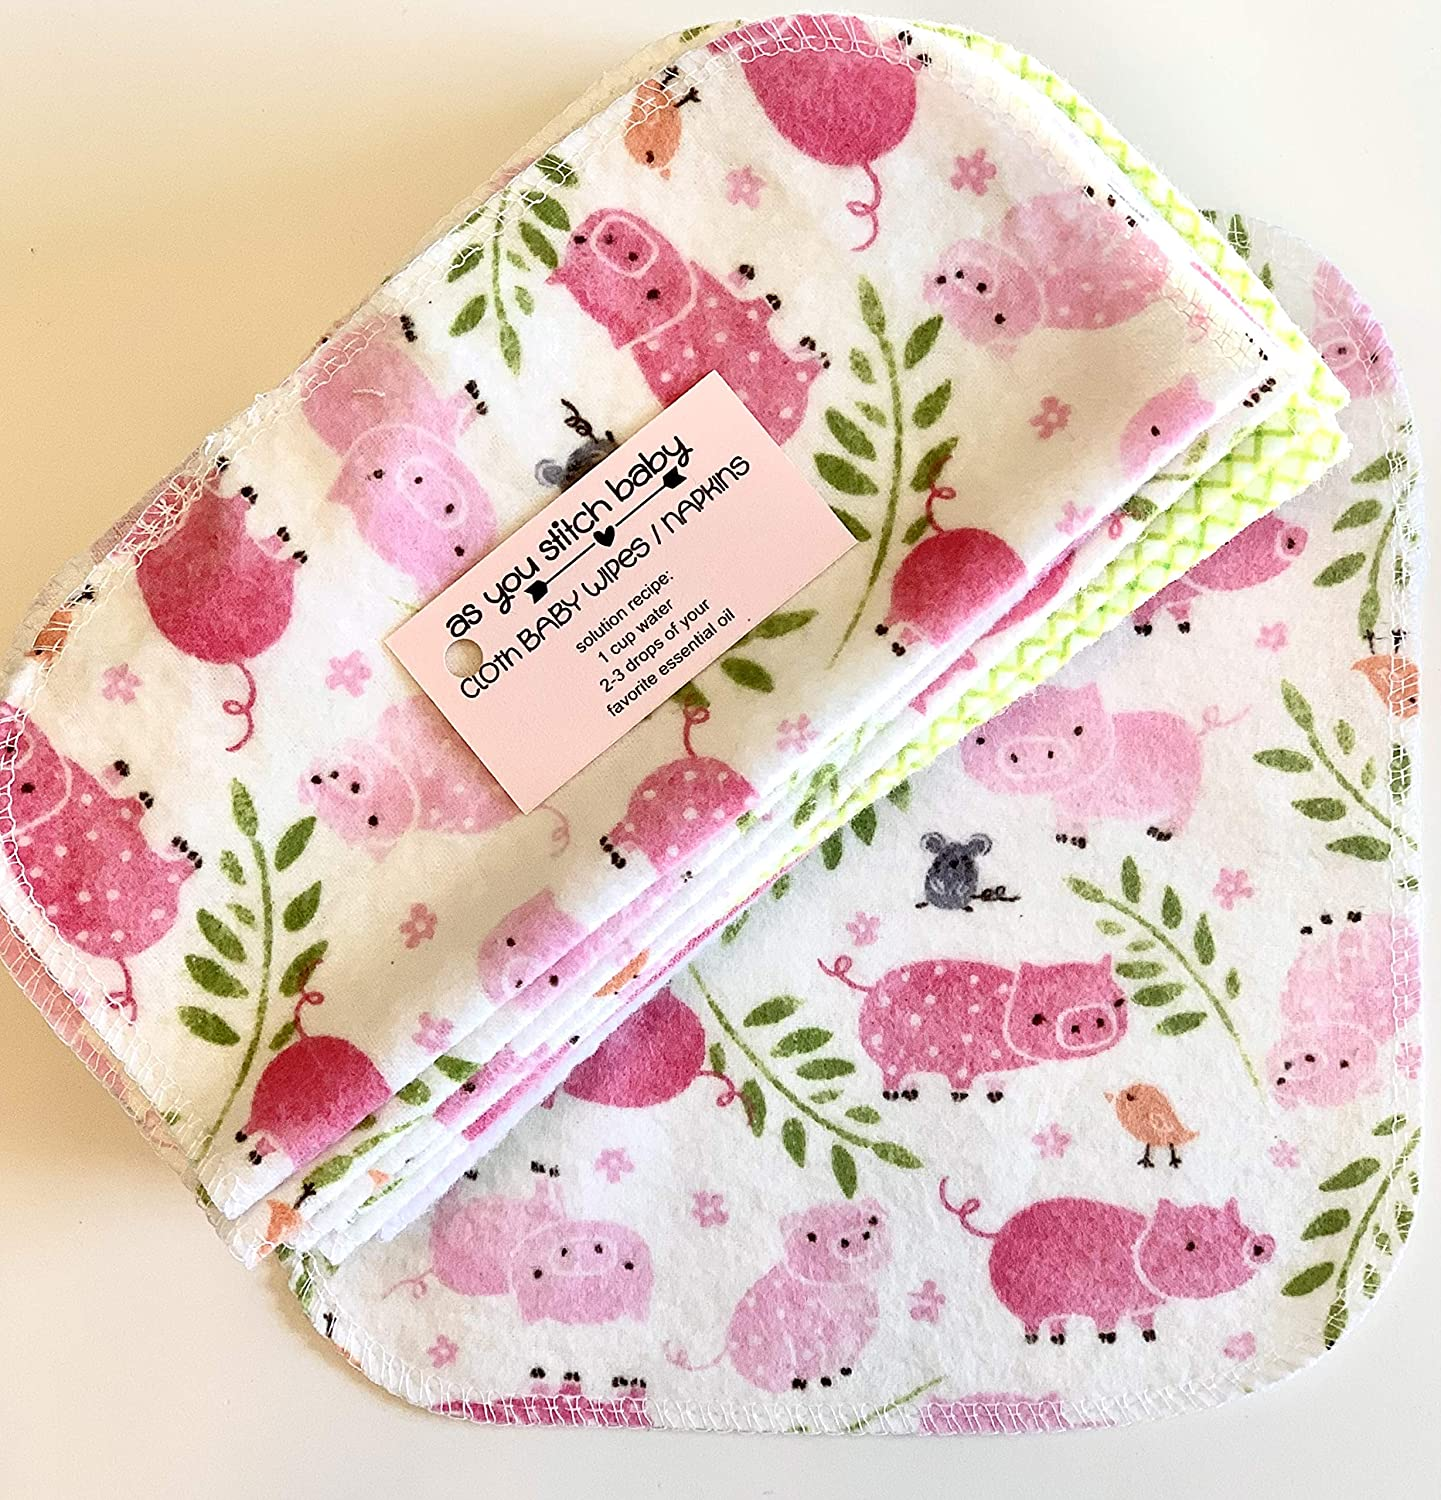 Set of 3 Dozen Wipes Reusable Cloth Napkin Baby Shower Gifts Ideas Cloth Baby Wipes Starter Kit Re Usable Cloth Wipes Pink Piggies Eco Friendly